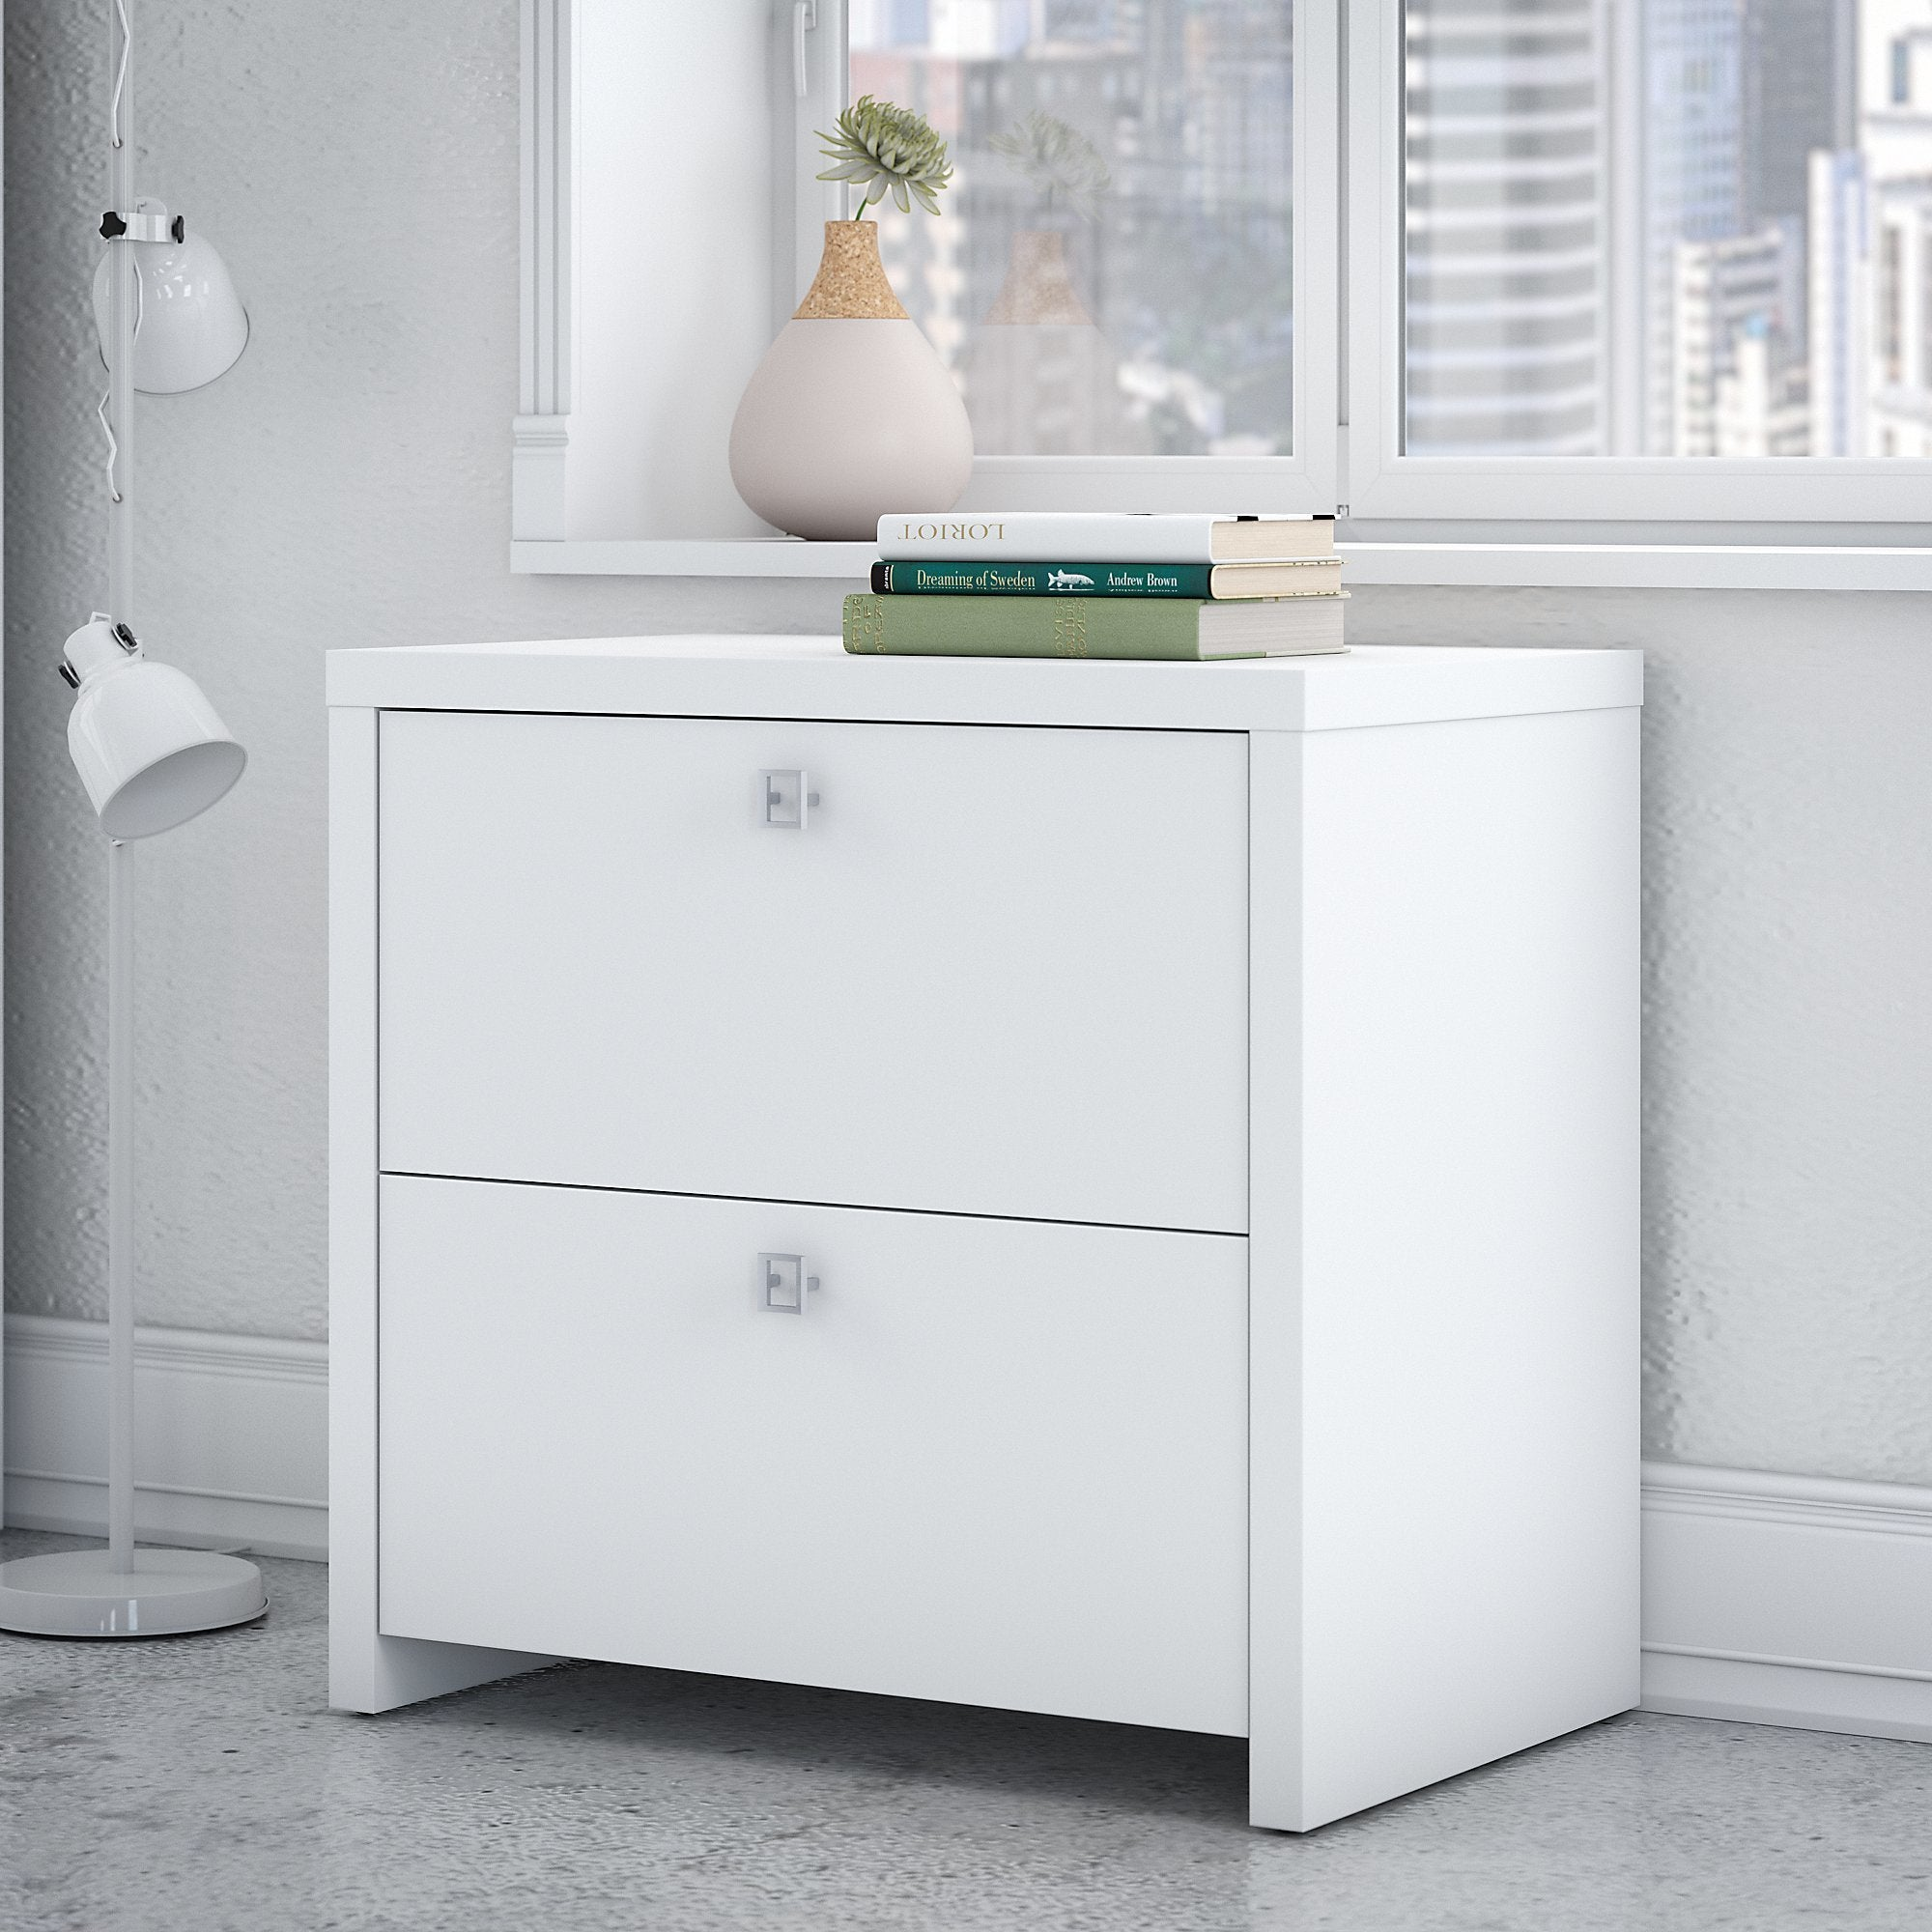 Office by kathy ireland Echo Lateral File Cabinet (30W La...